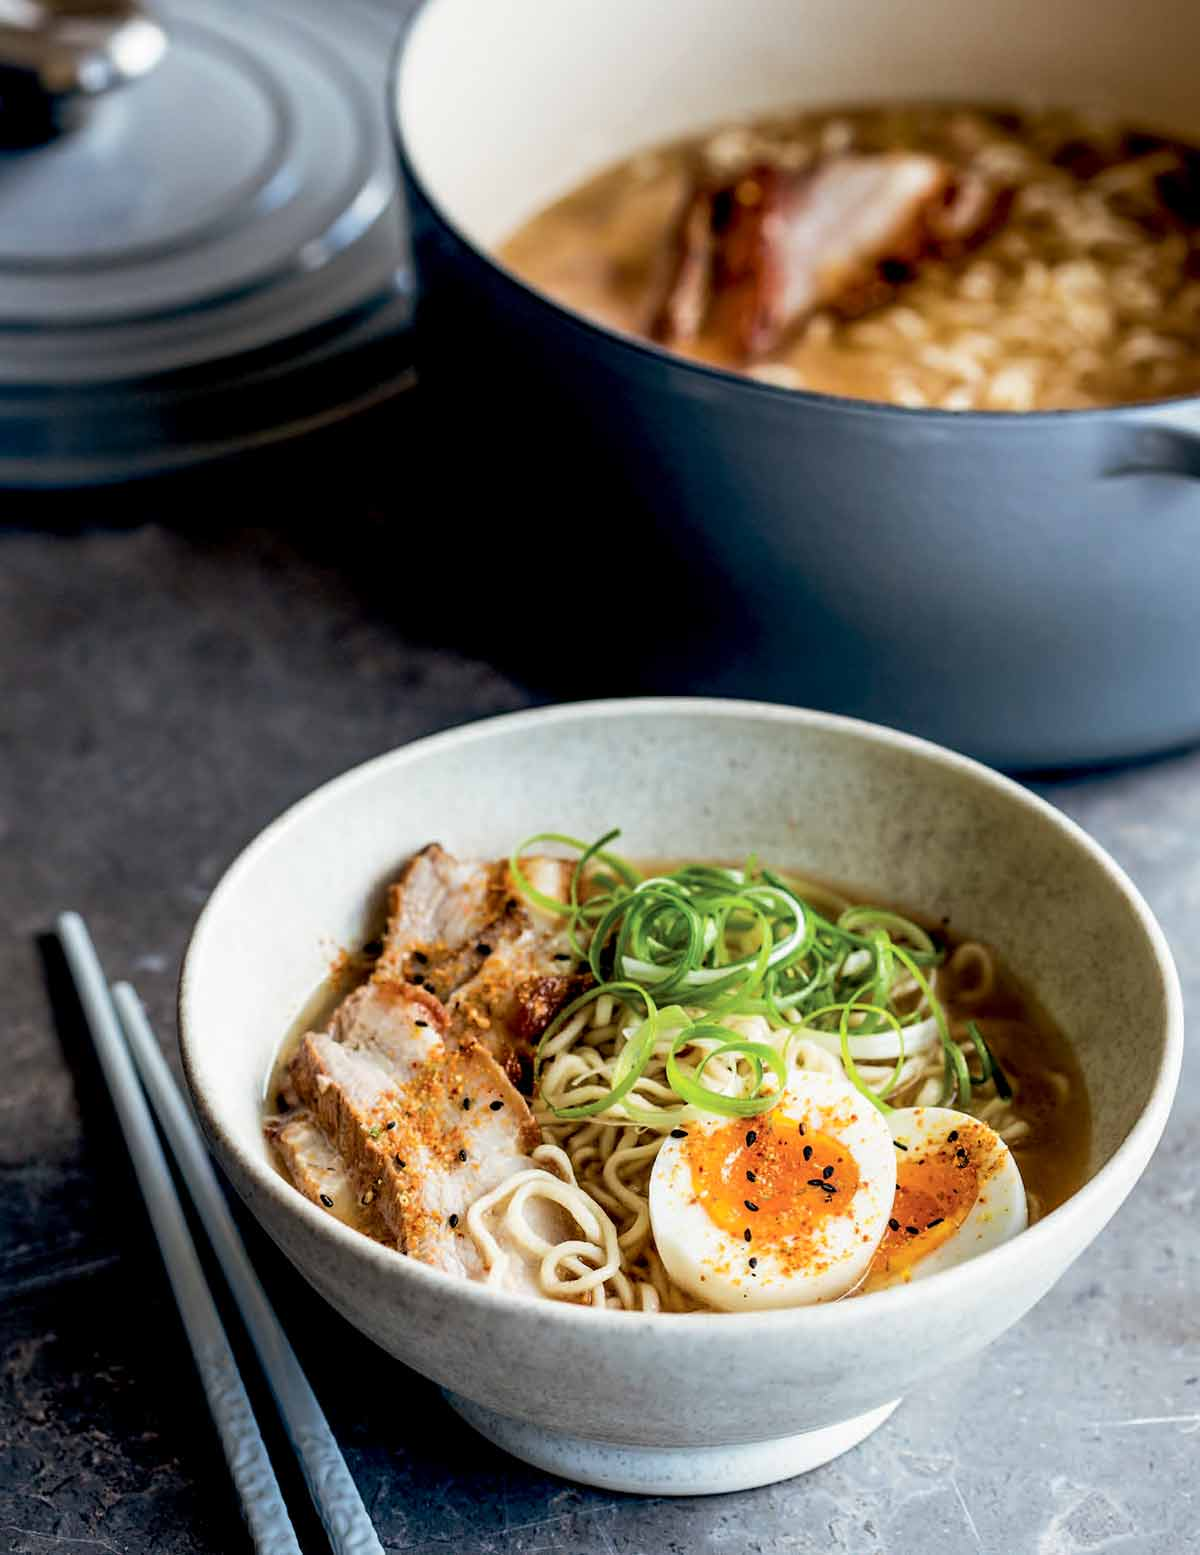 A white bowl filled with pork belly ramen, two egg halves, and scallions with a Dutch oven in the background and a pair of chopsticks lying beside the bowl.